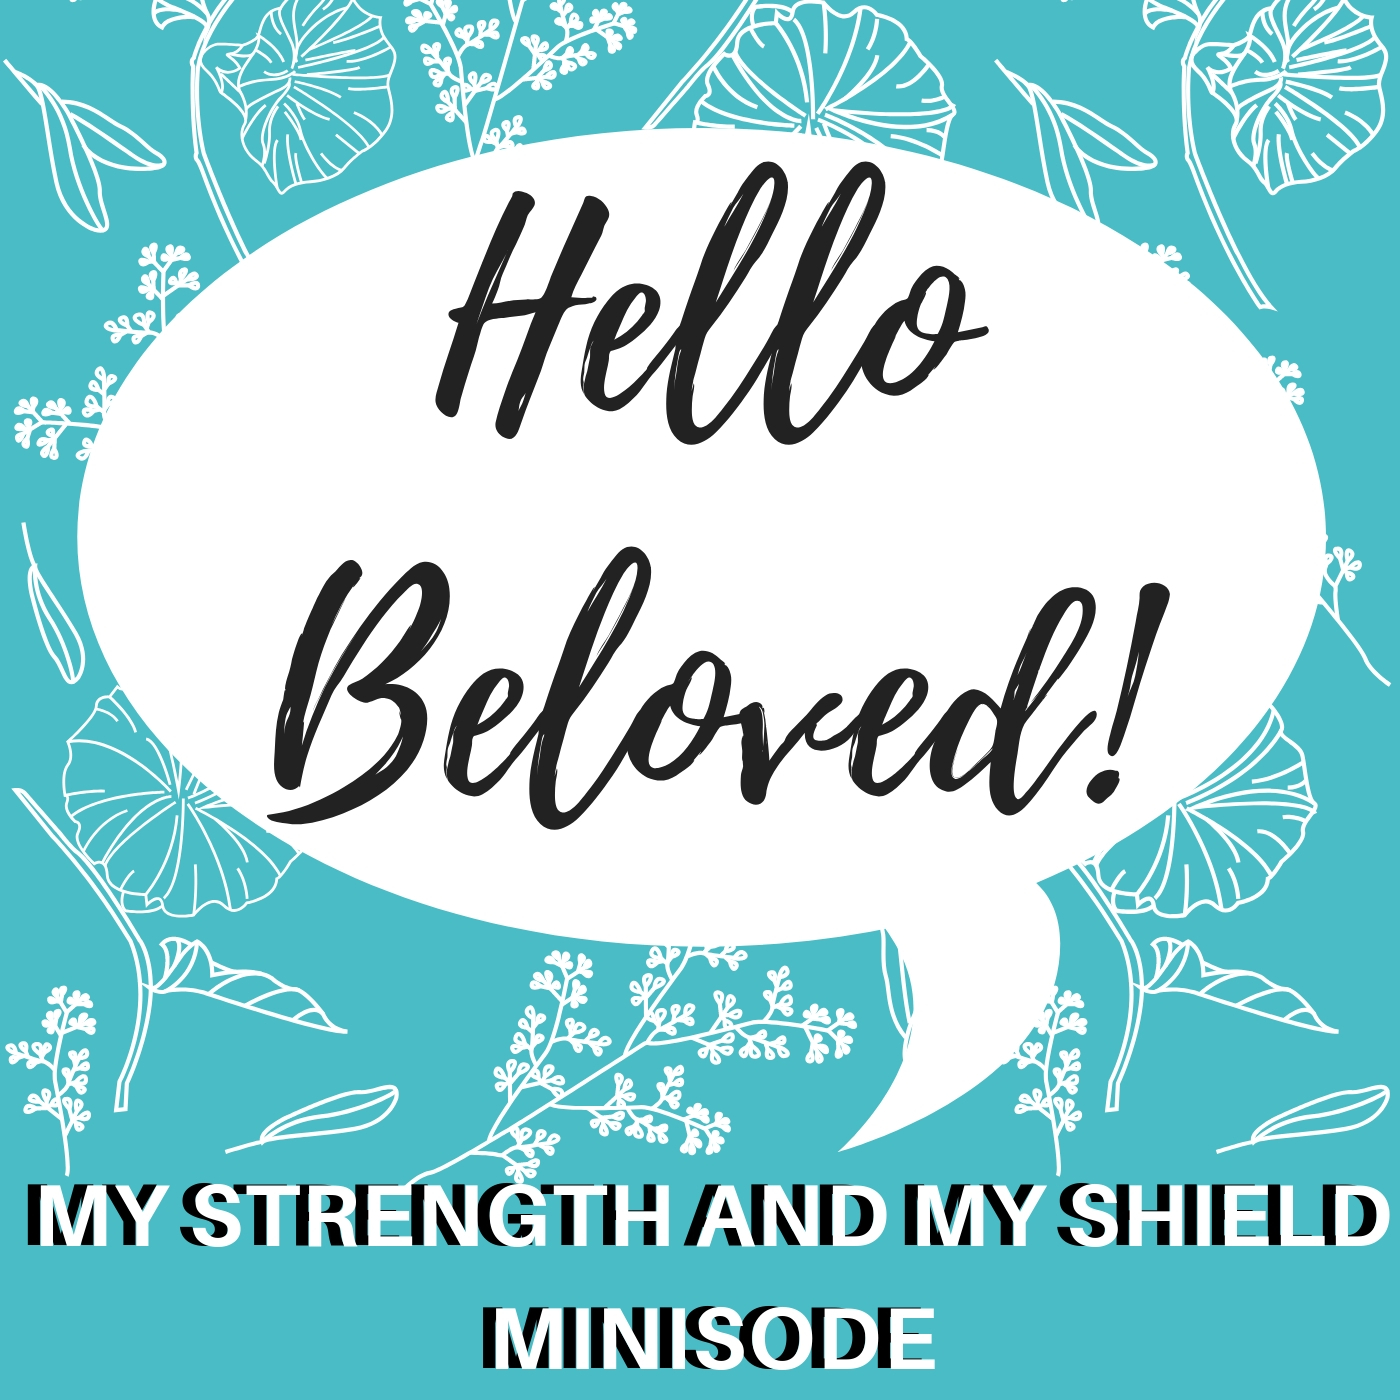 Guess who's back! Me…it's me…I'm back. A not so mini minisode where I discuss my hiatus to focus on my mental health and I also share the great expectations of preparing for marriage.